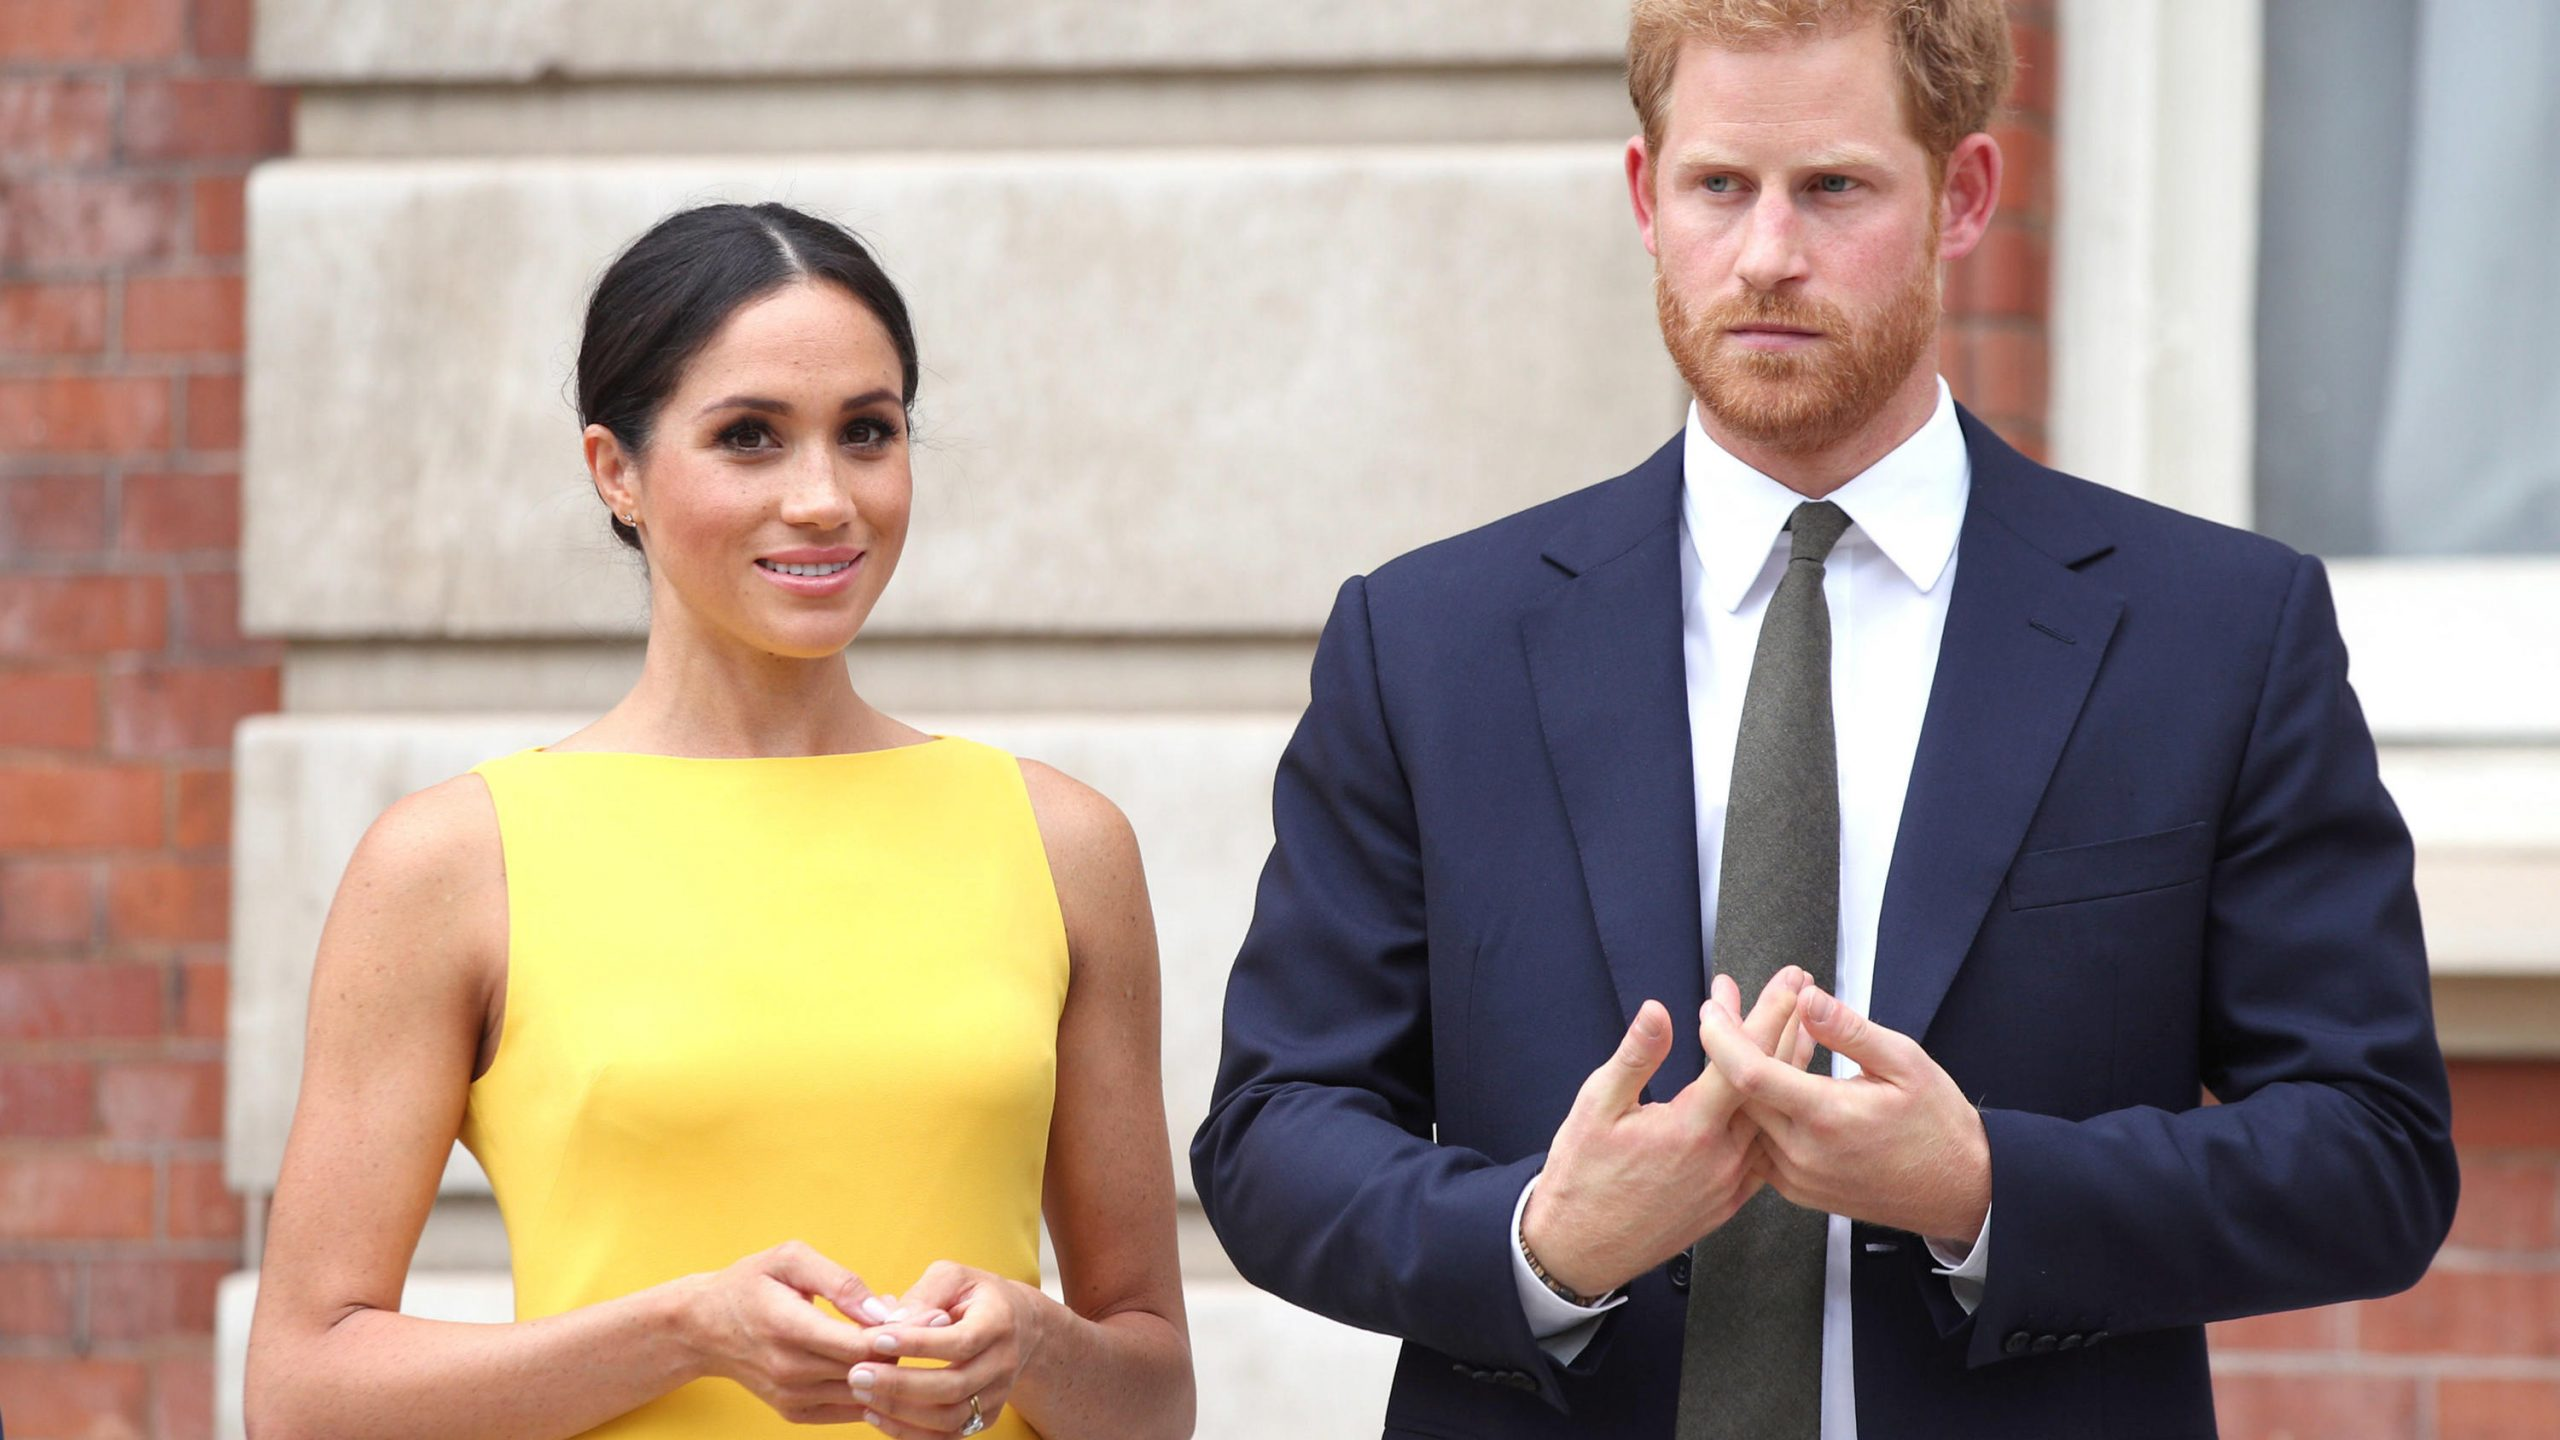 Harry and Meghan's daughter grew up in this Hollywood glamor